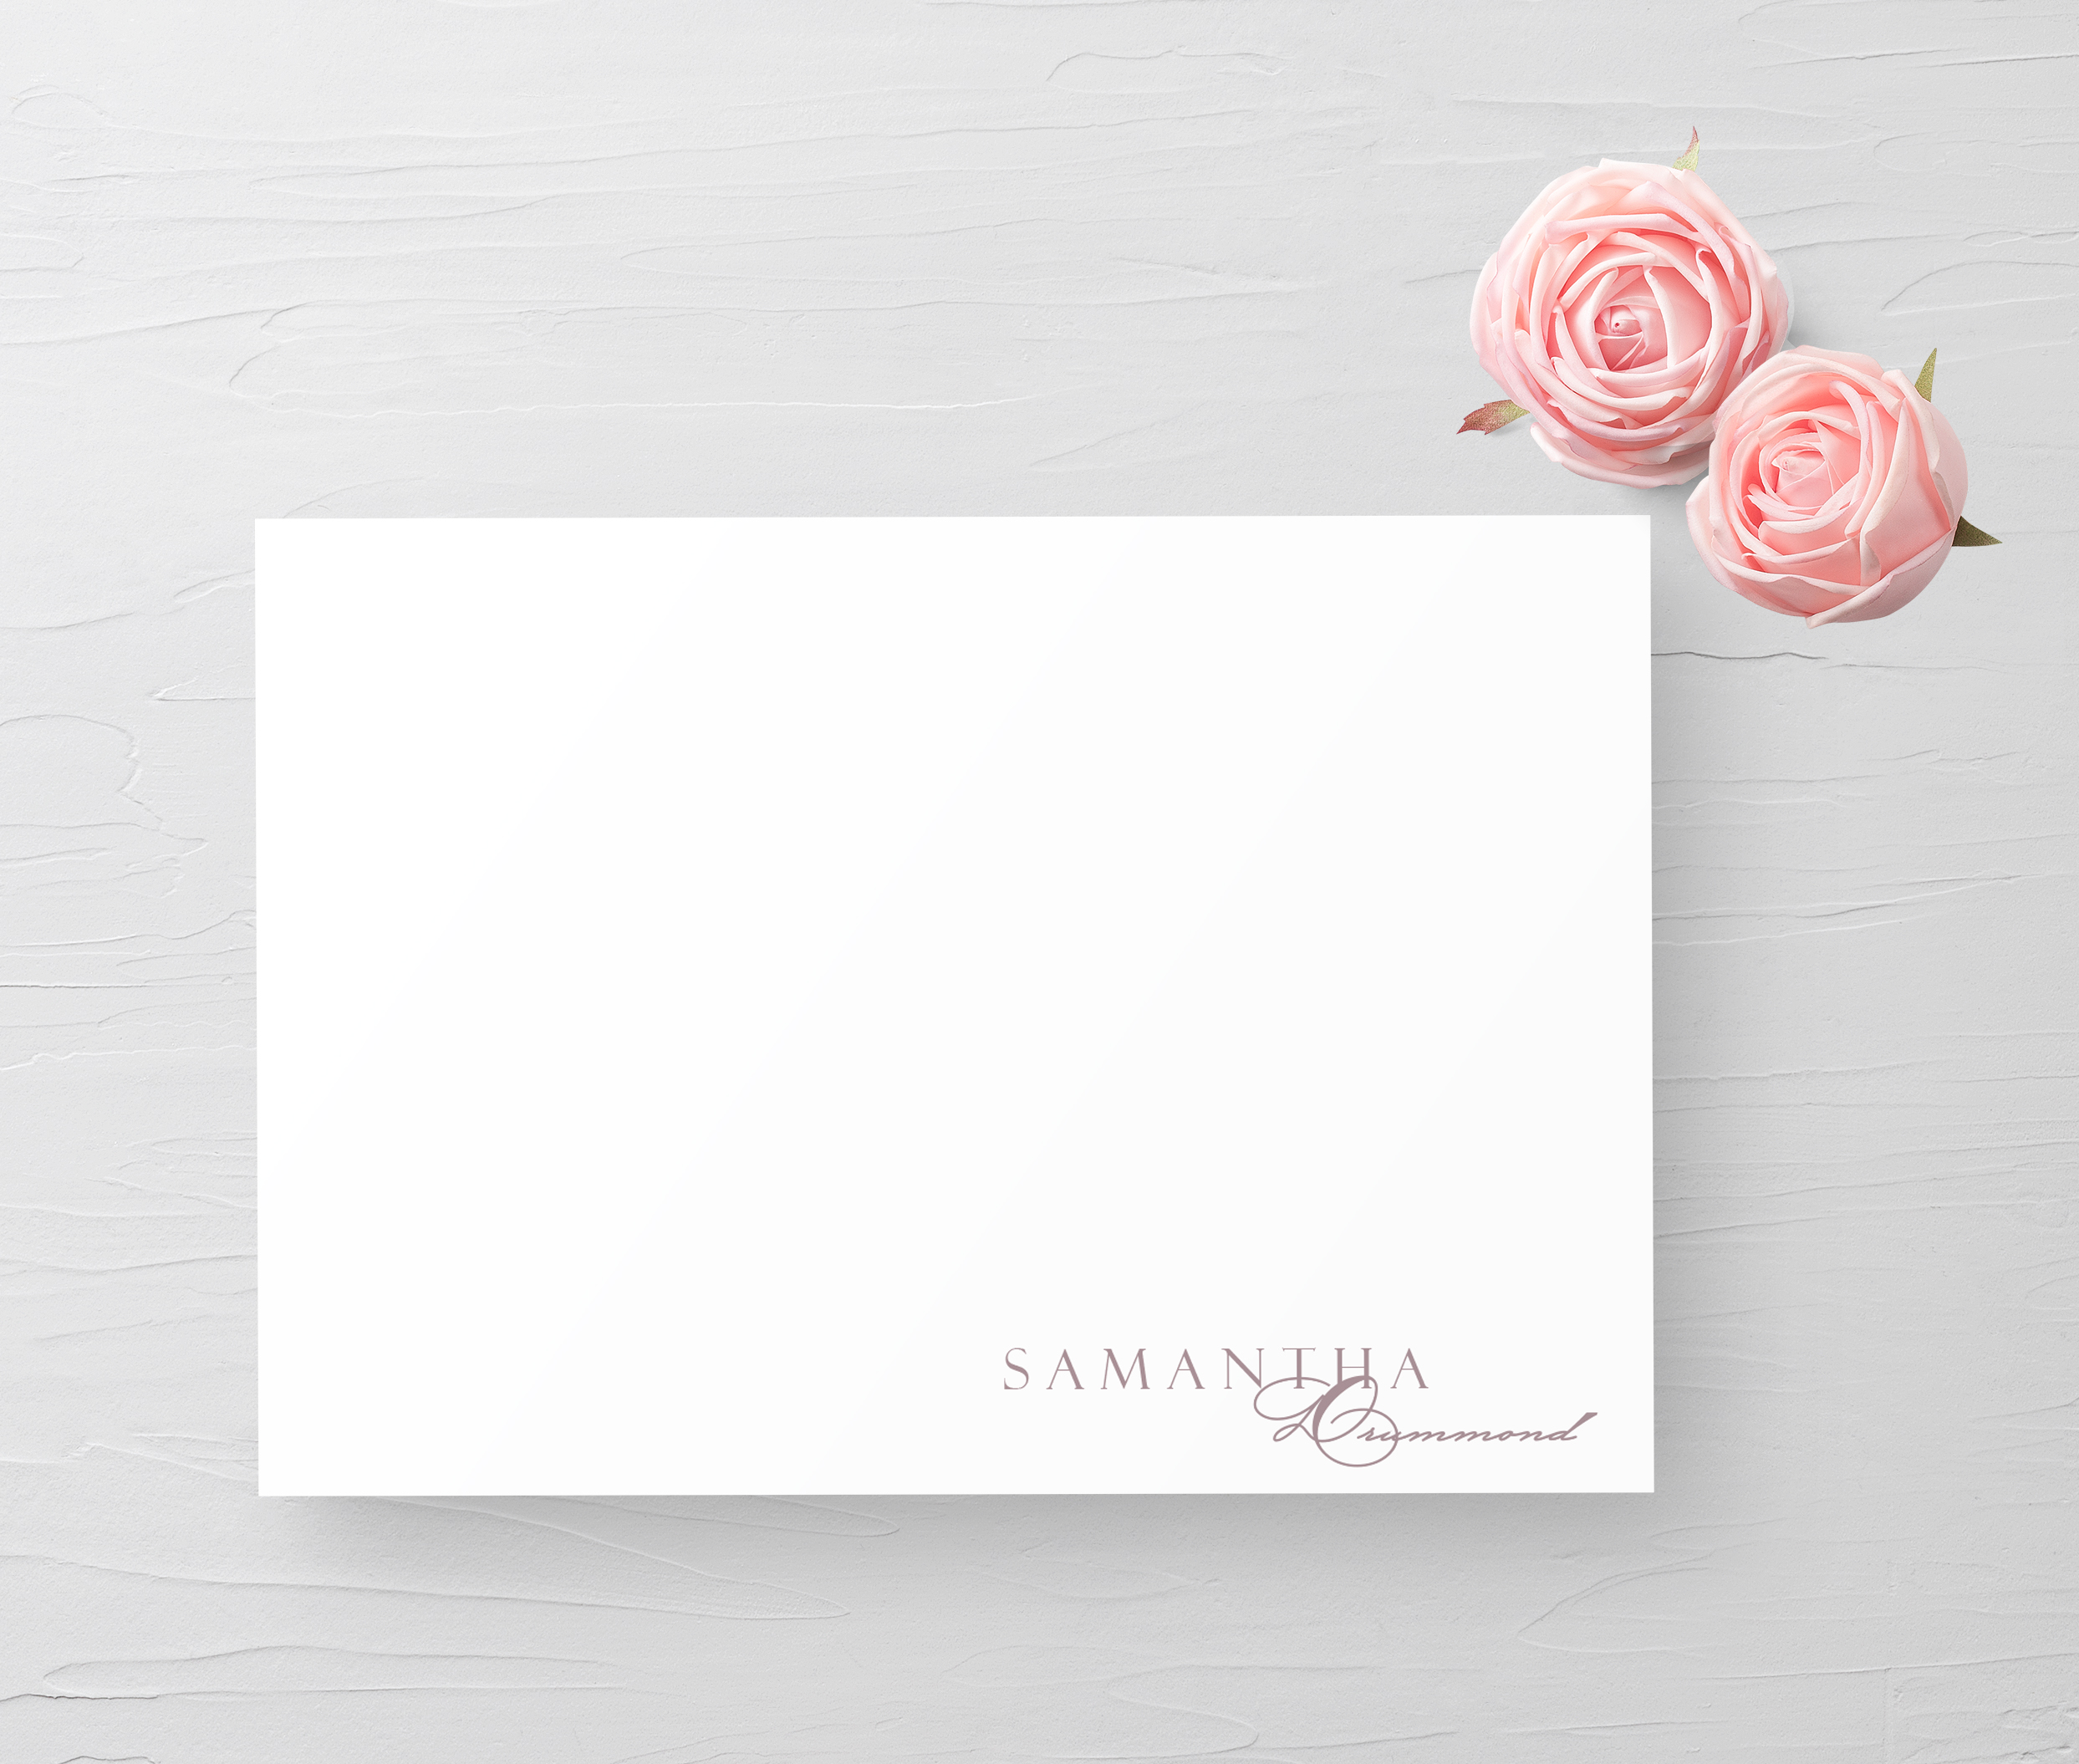 Personlaized Stationery